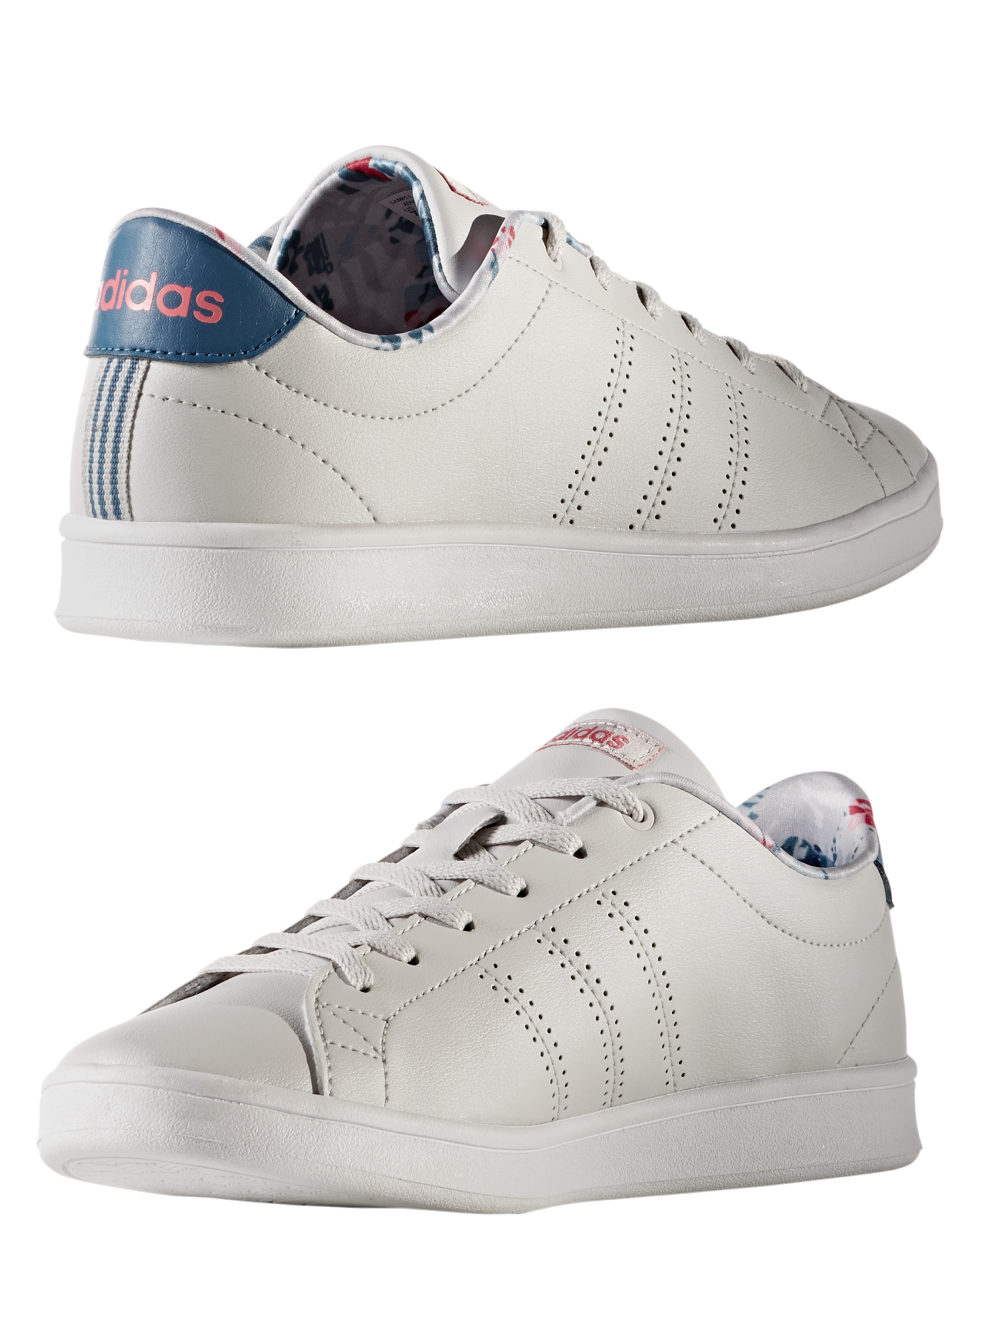 Adidas Scarpe Sneakers Trainers Sportive Tennis NEO ADVANTAGE CL QT W Donna